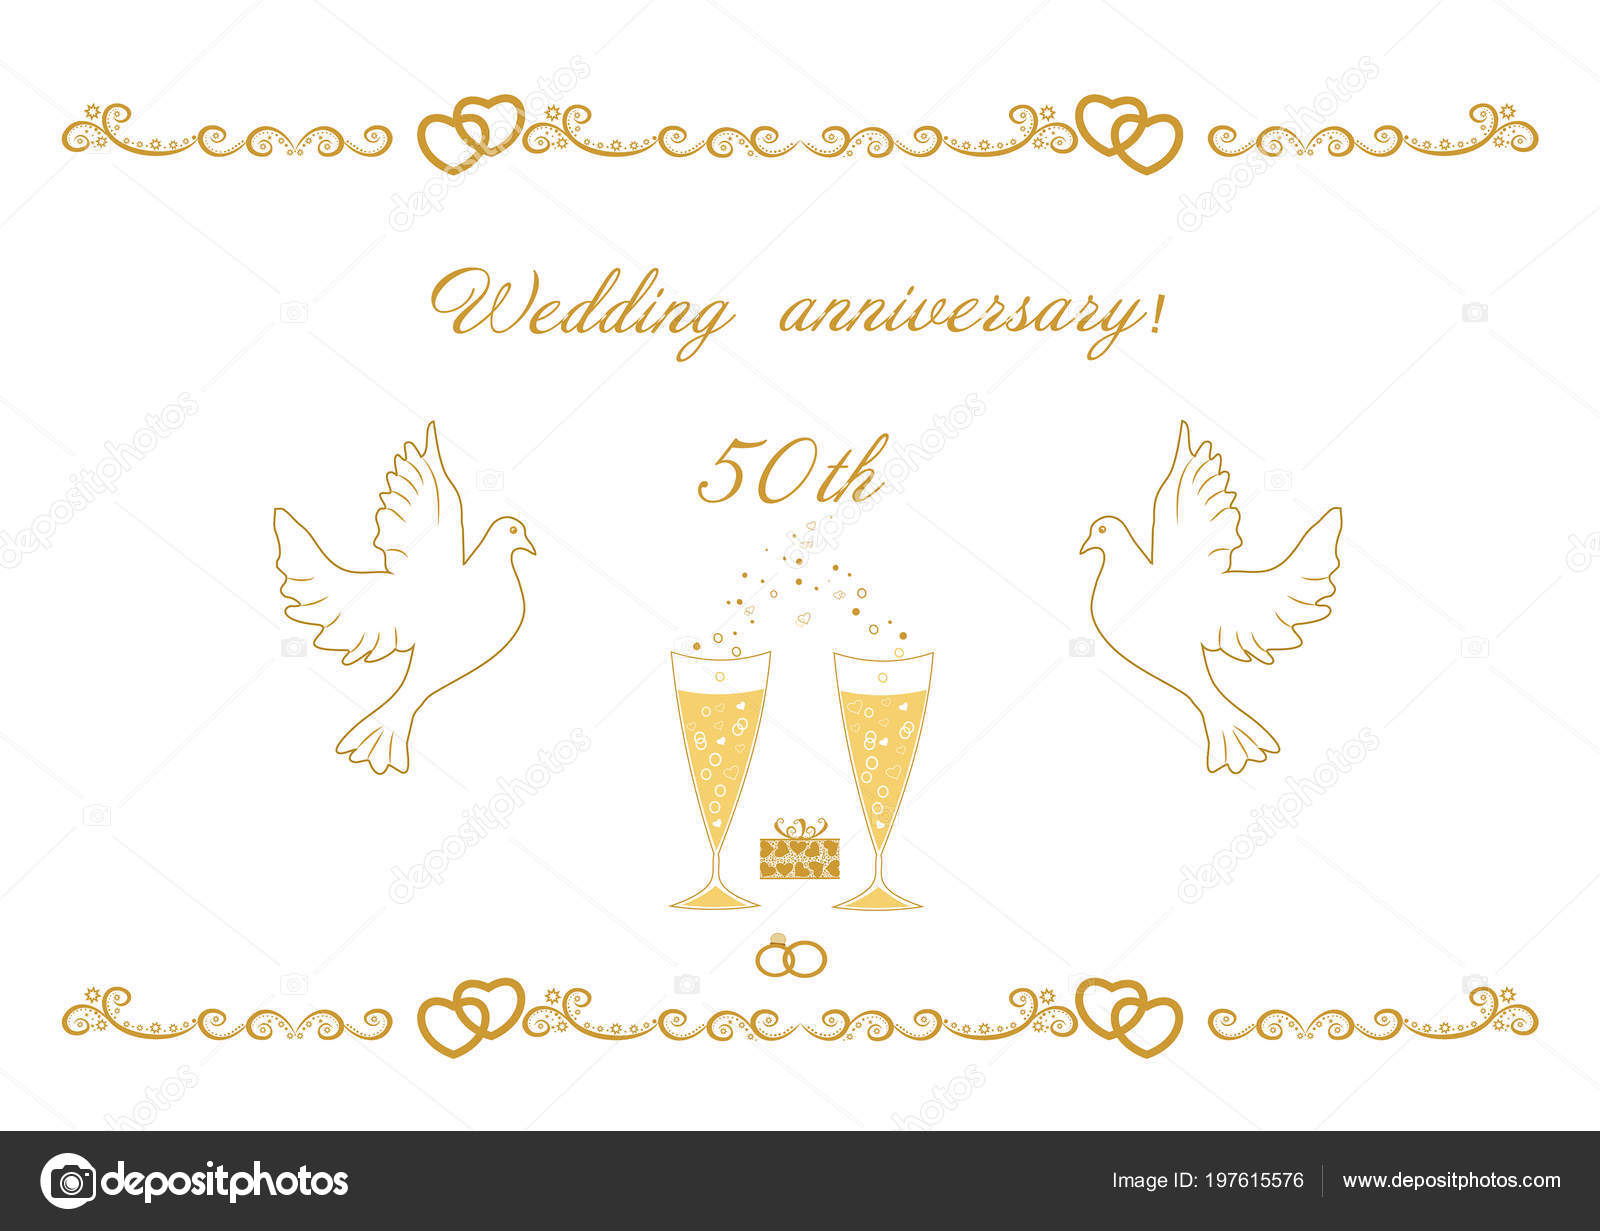 50th Wedding Anniversary Card Greetings Writing Text Vector